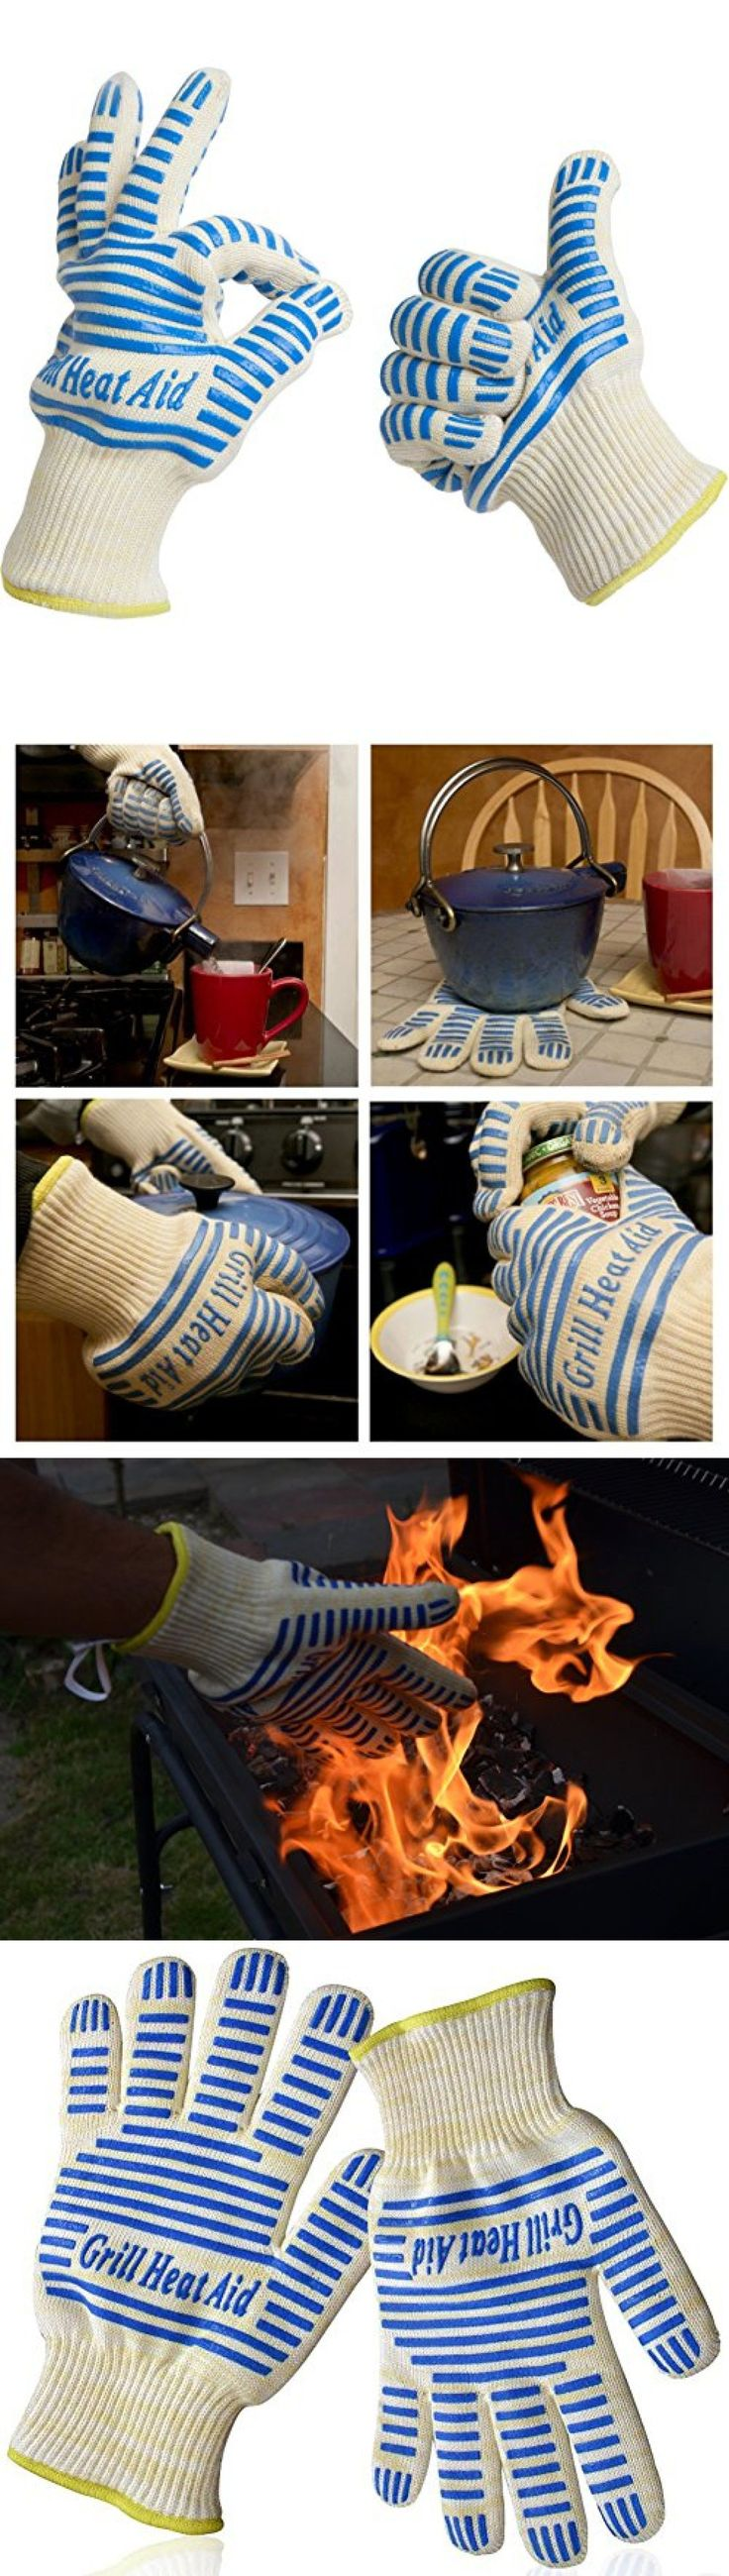 Oven Mitts and Potholders 20661: Grill Heat Aid, Heat Resistant Gloves, 932°F En407 Certified, Thick But Light-W -> BUY IT NOW ONLY: $40.45 on eBay!